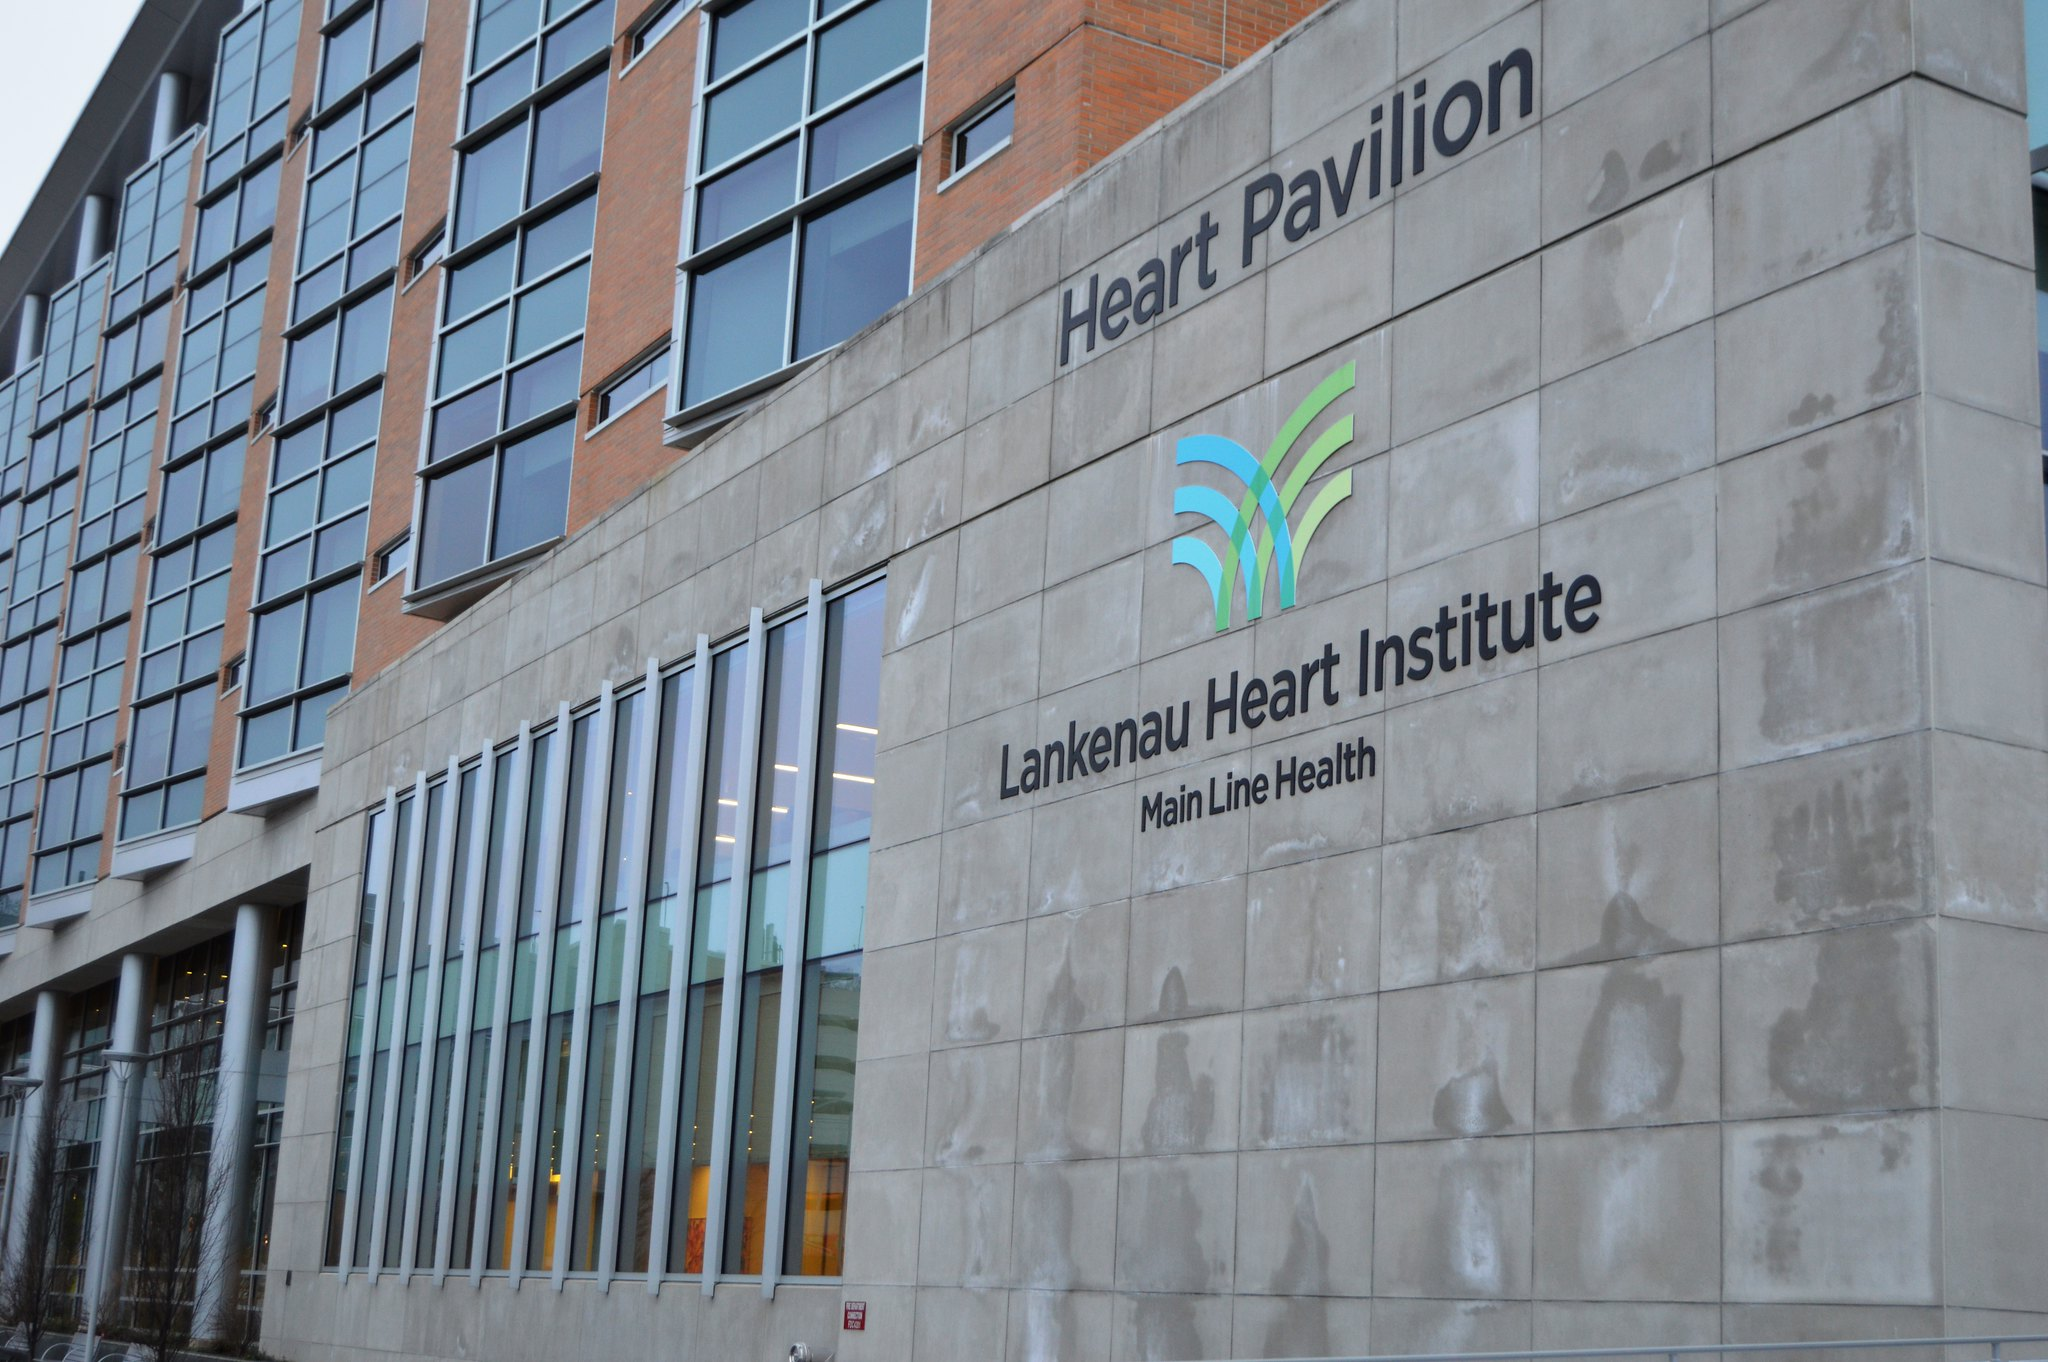 Main Line Health's Lankenau Medical Center Named One of Nation's 50 Top Cardiovascular Hospitals